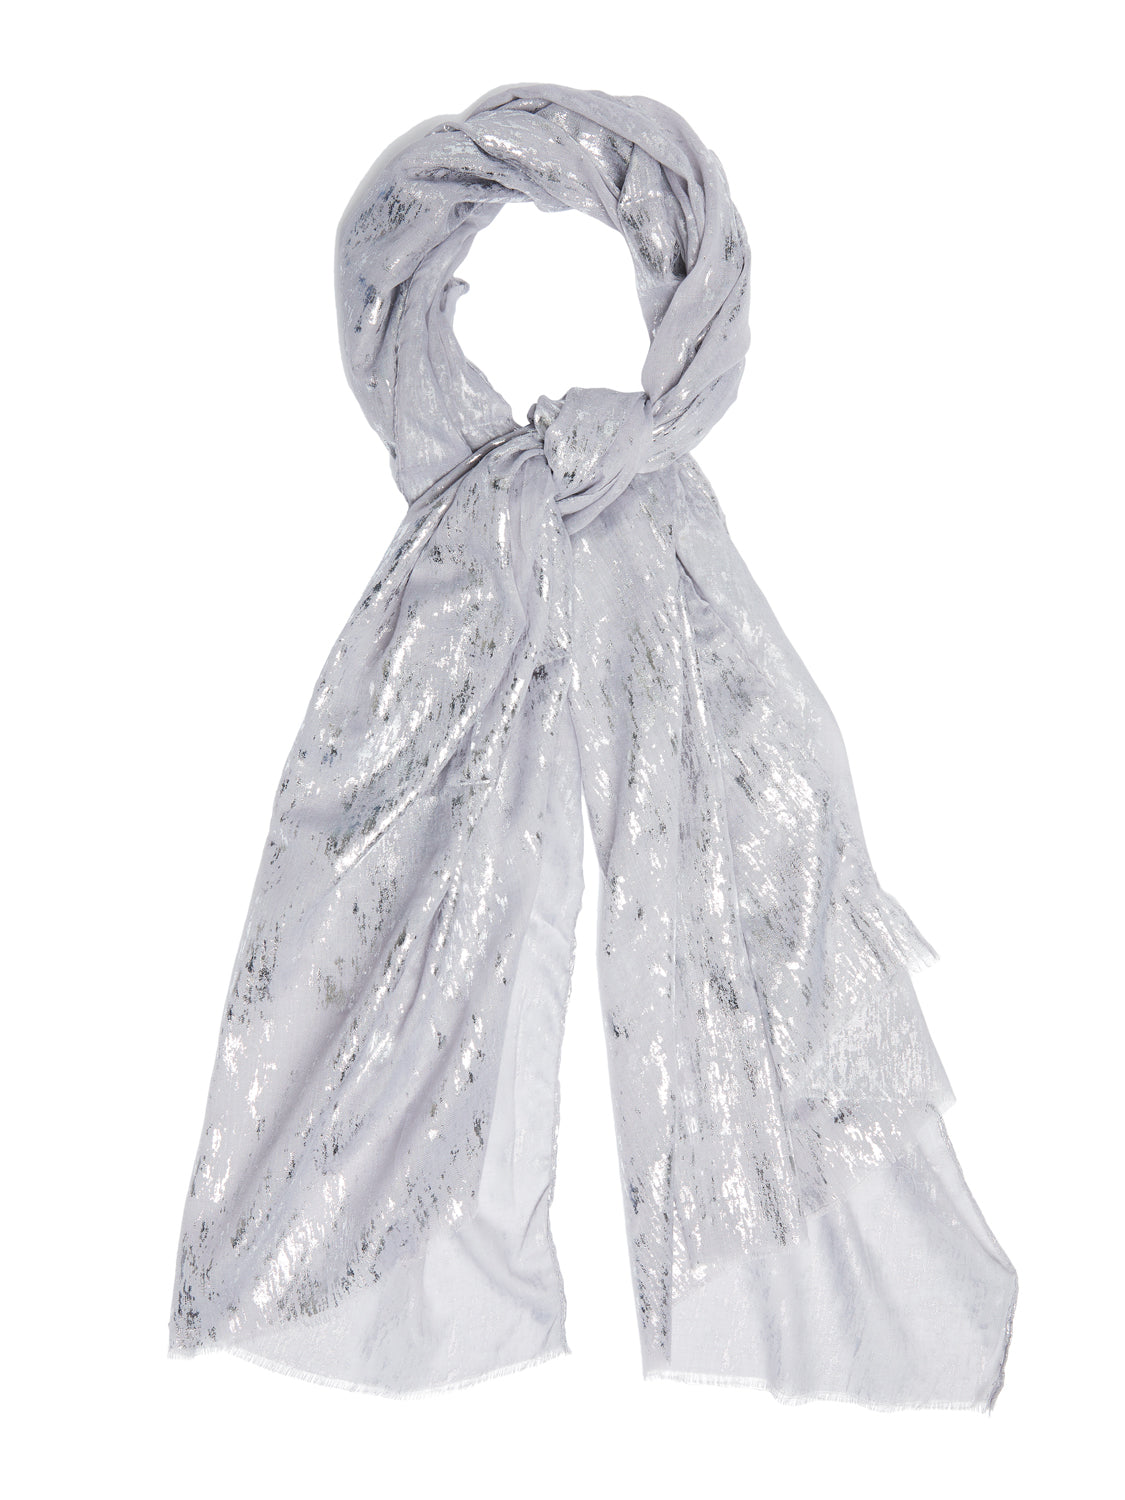 Abstract Foil Scarf With Raw Edges